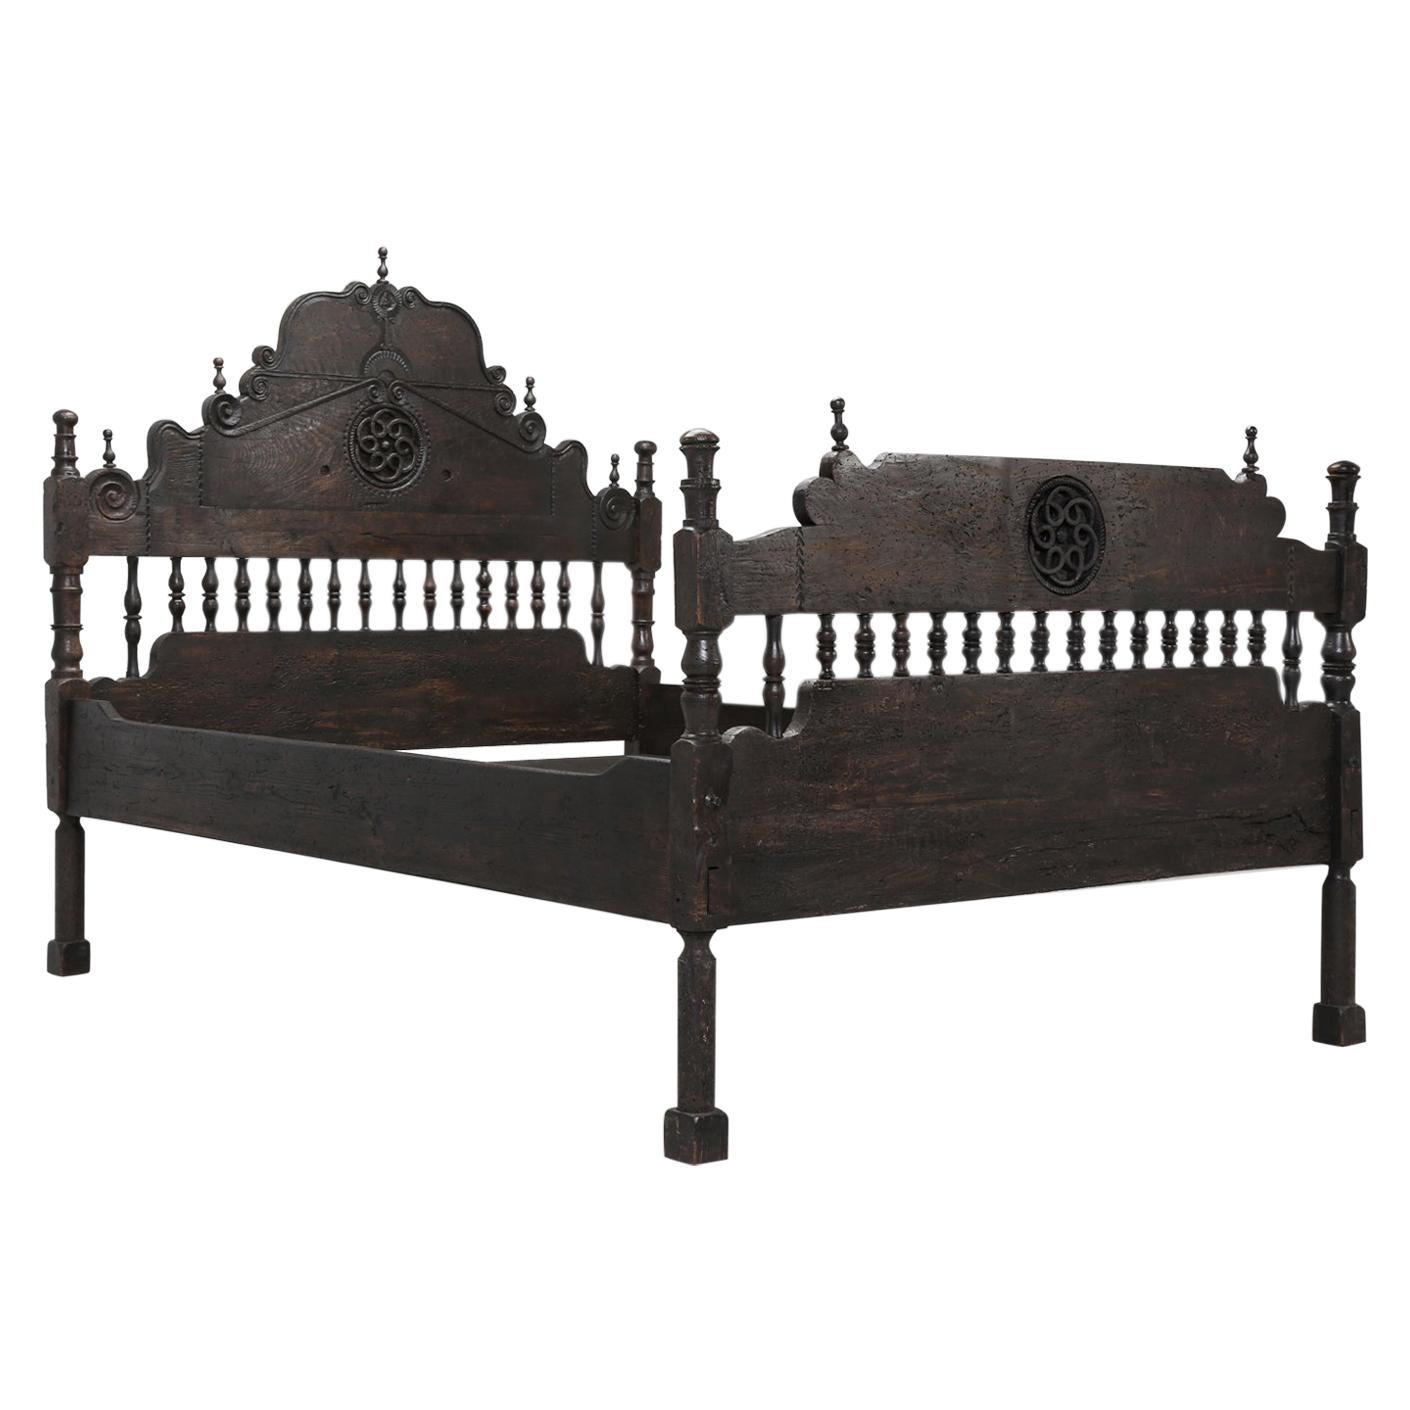 Antique French or Spanish Colonial Style Bed, Converted to a Queen Size Bed